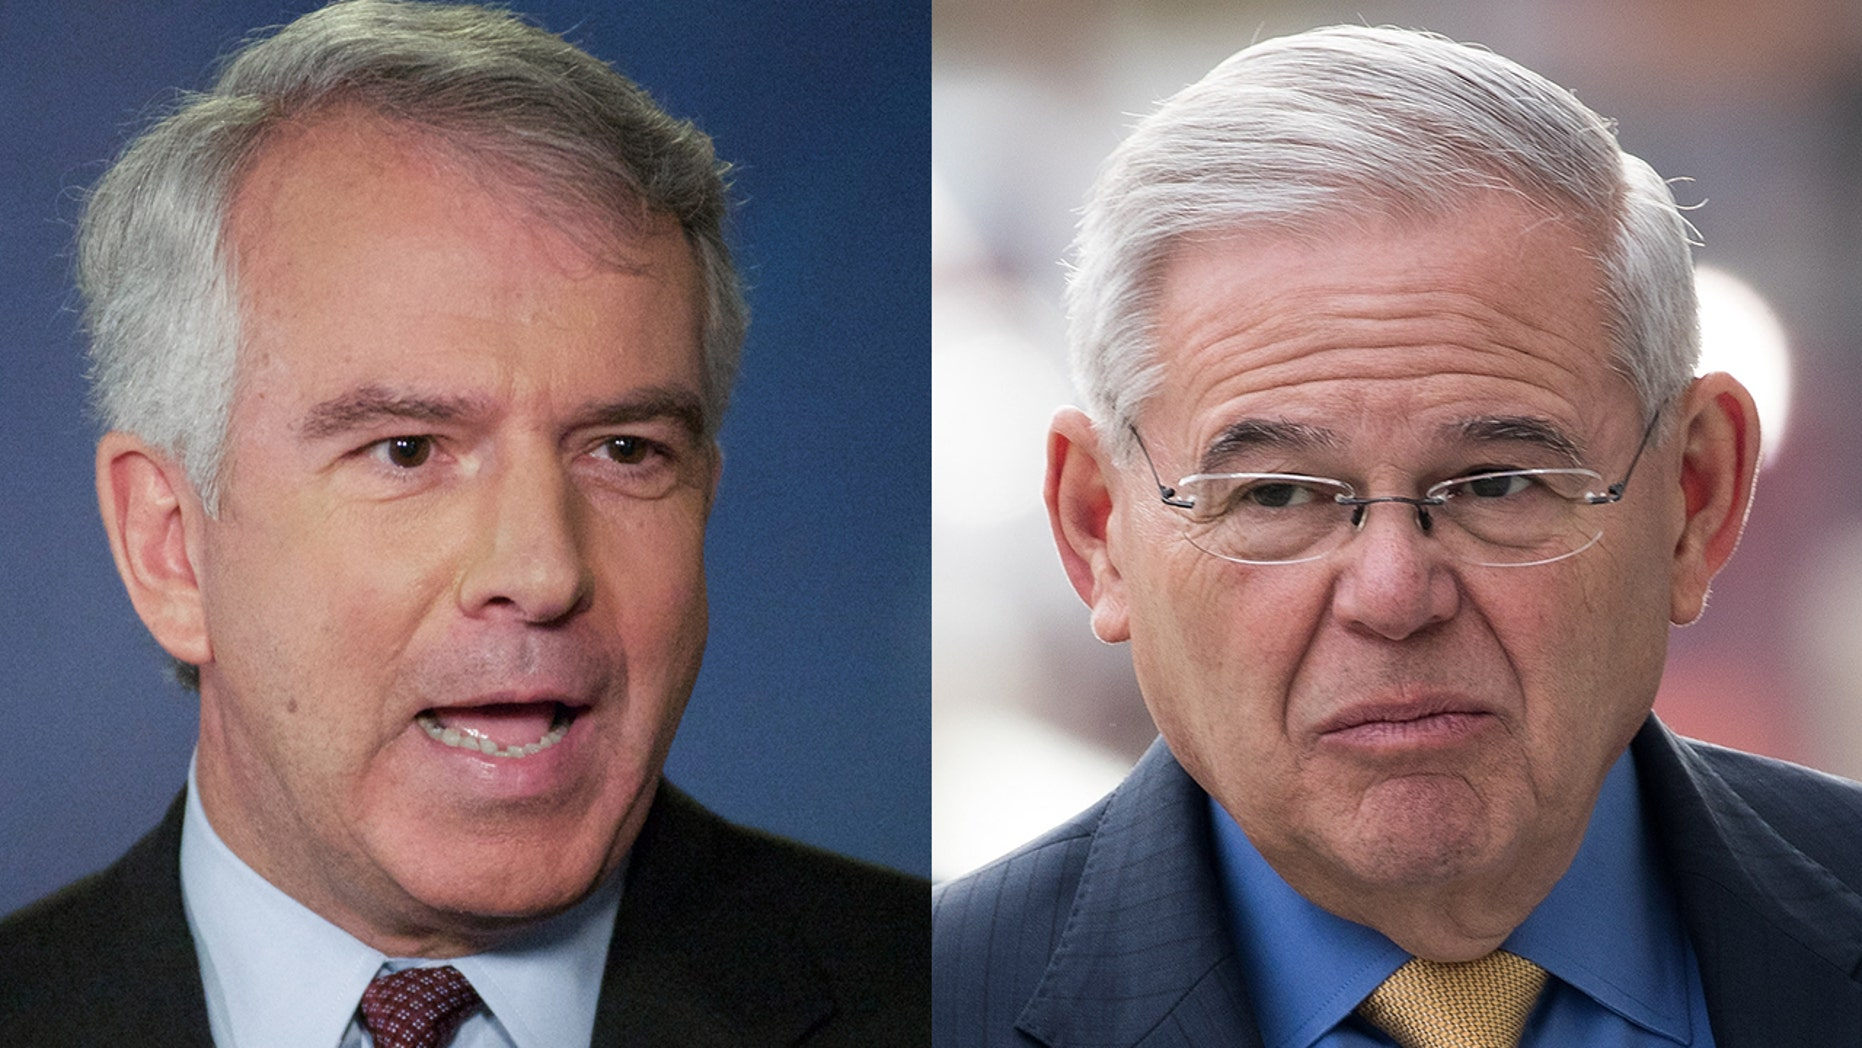 Republican Bob Hugin is going nuclear against incumbent Democratic Sen. Bob Menendez in the final days of the closer-than-expected New Jersey Senate race.